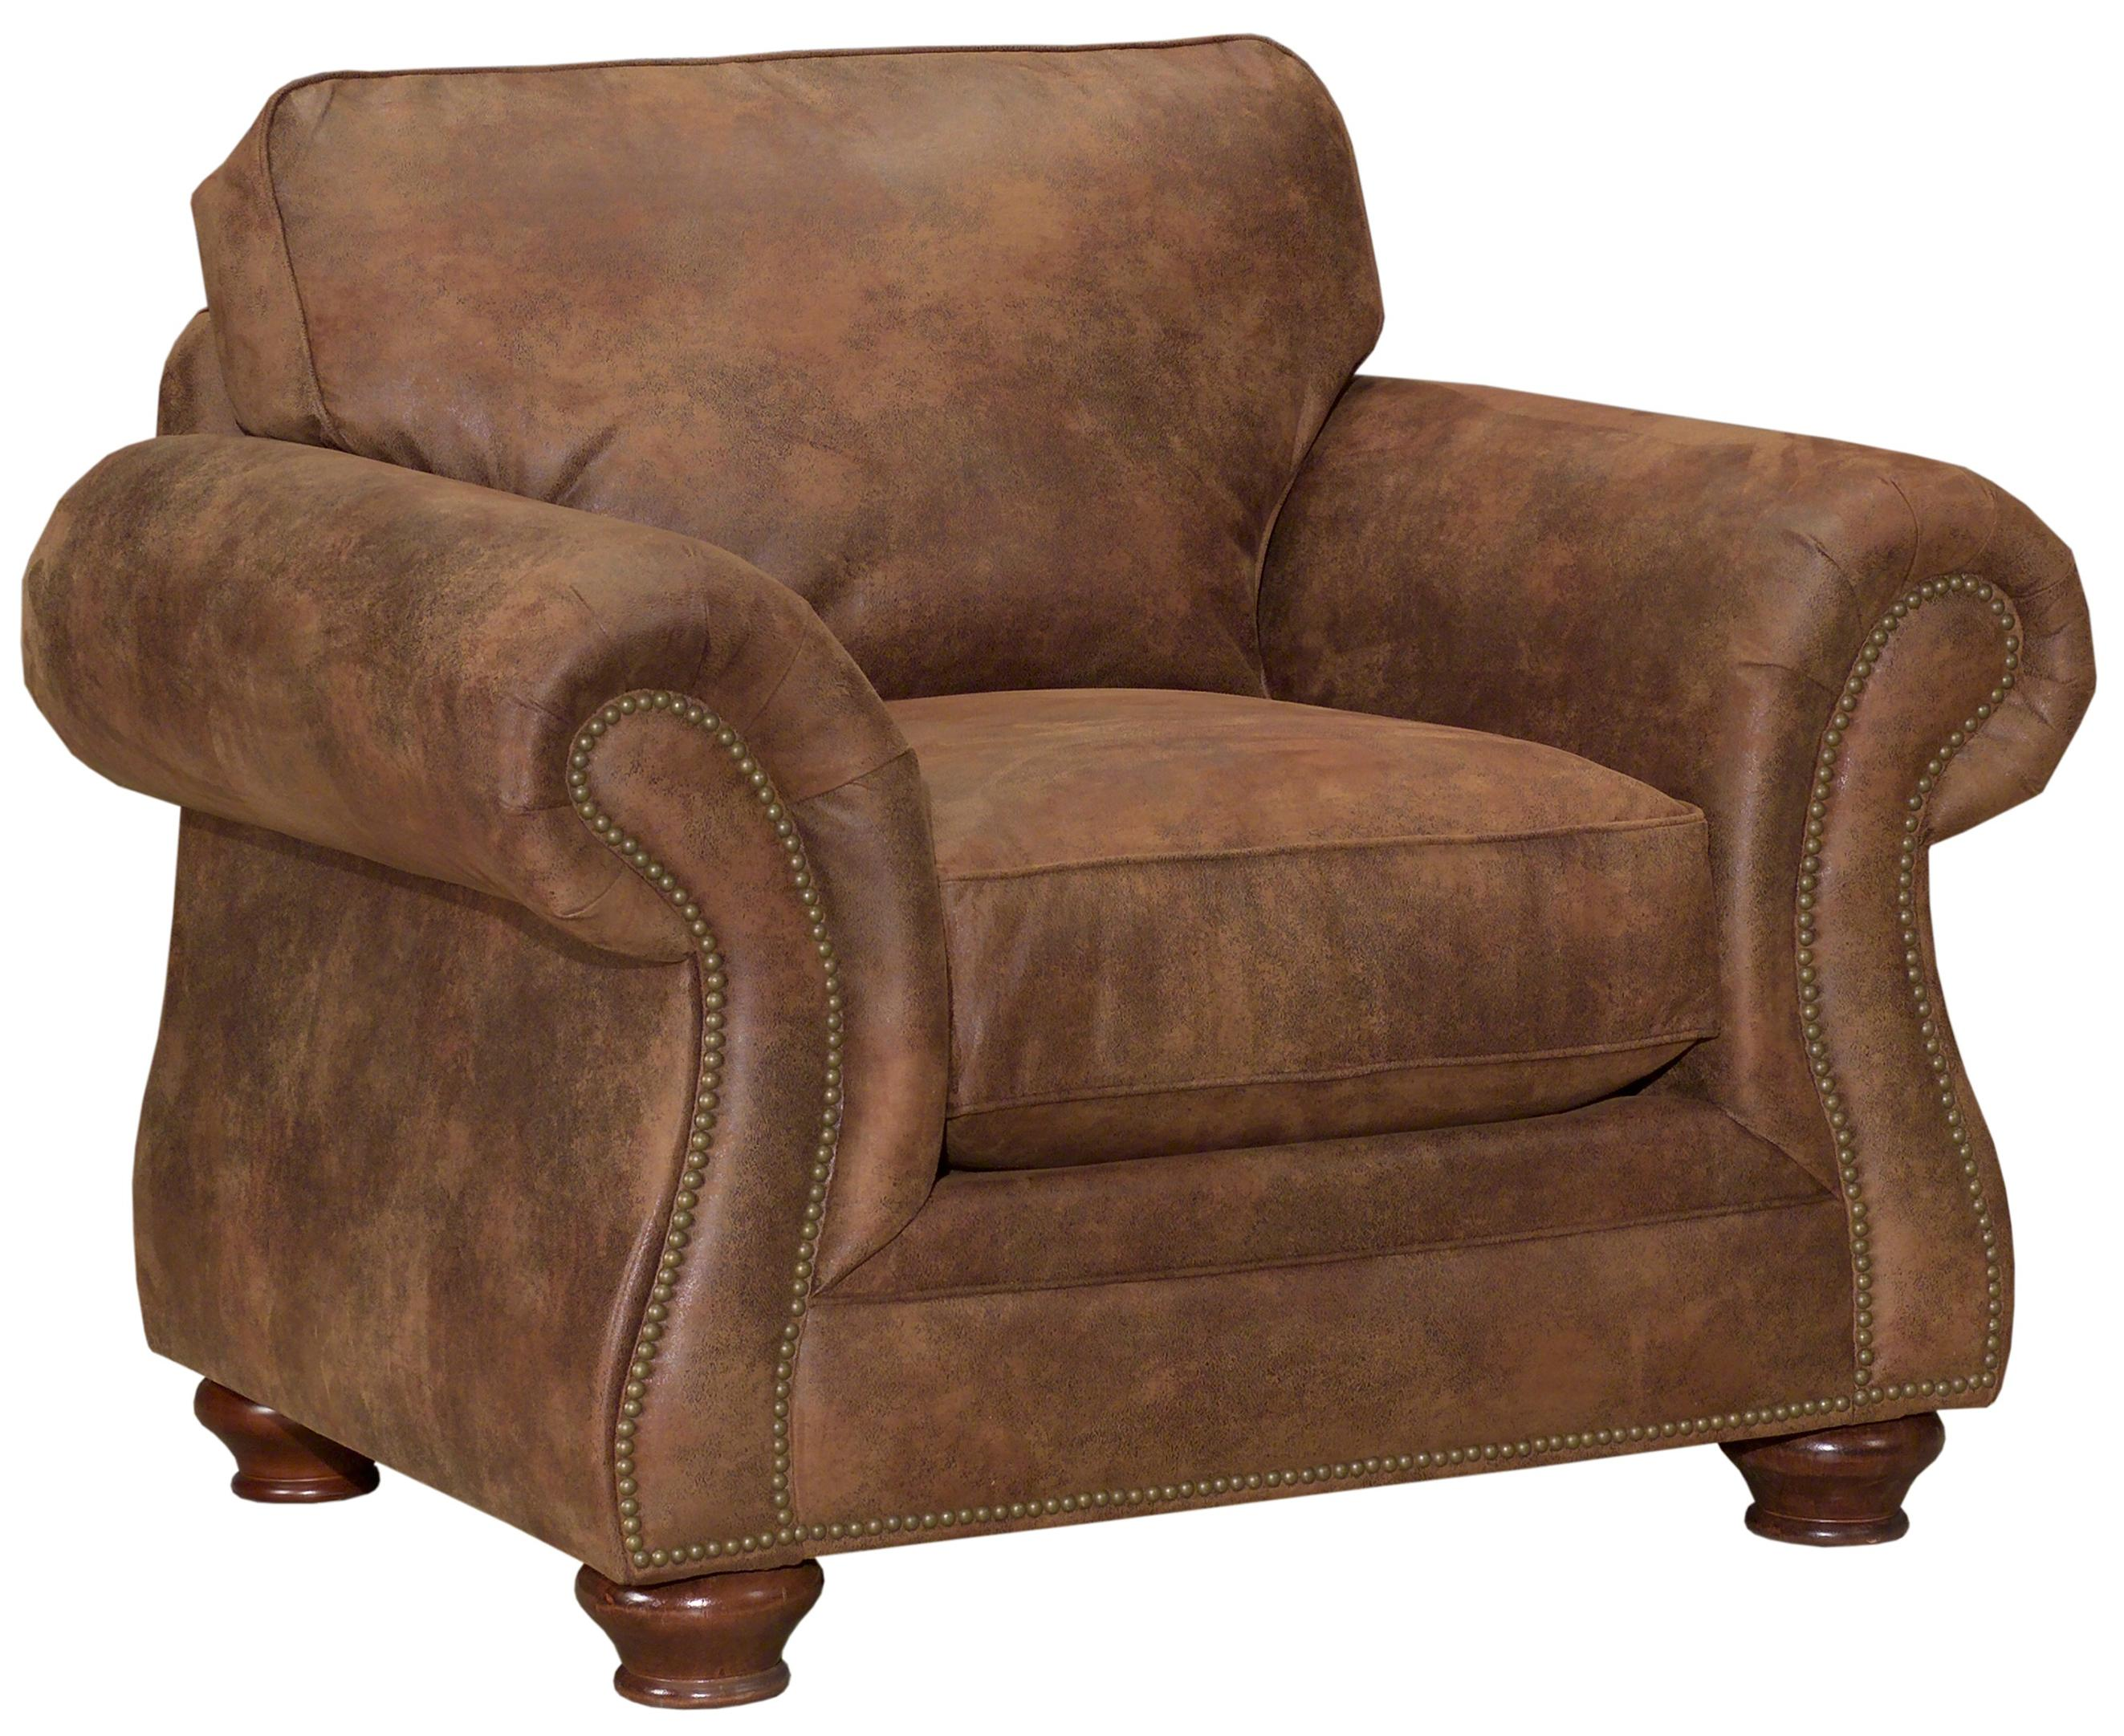 Broyhill Furniture Laramie Chair - Item Number: 5081-0